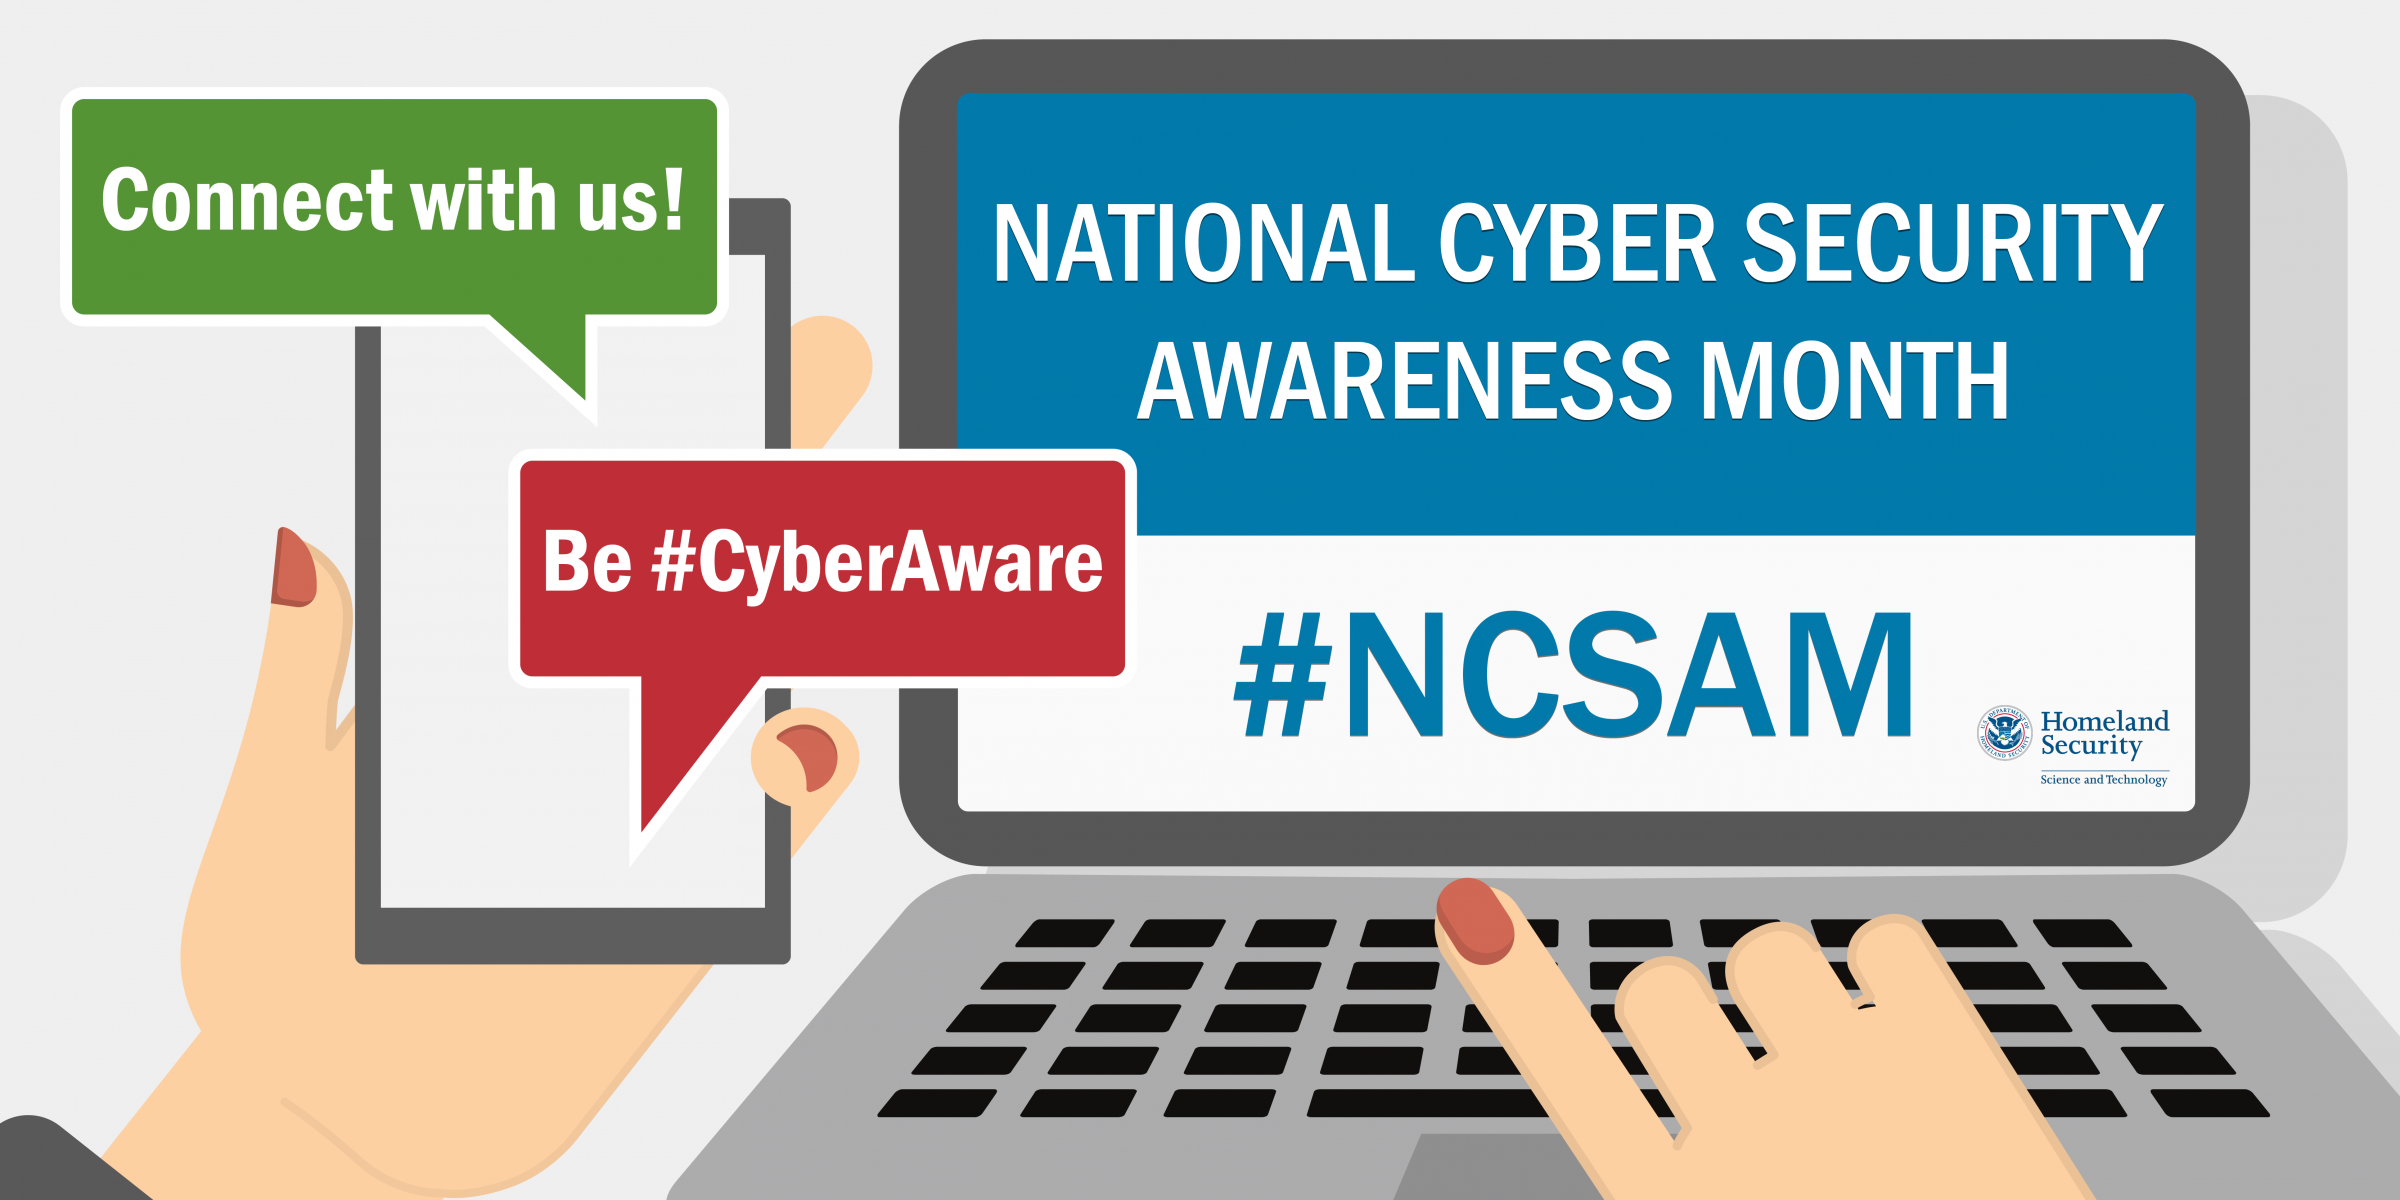 Connect with us! Be #CyberAware. National Cyber Security Awareness Month #NCSAM DHS S&T Logo